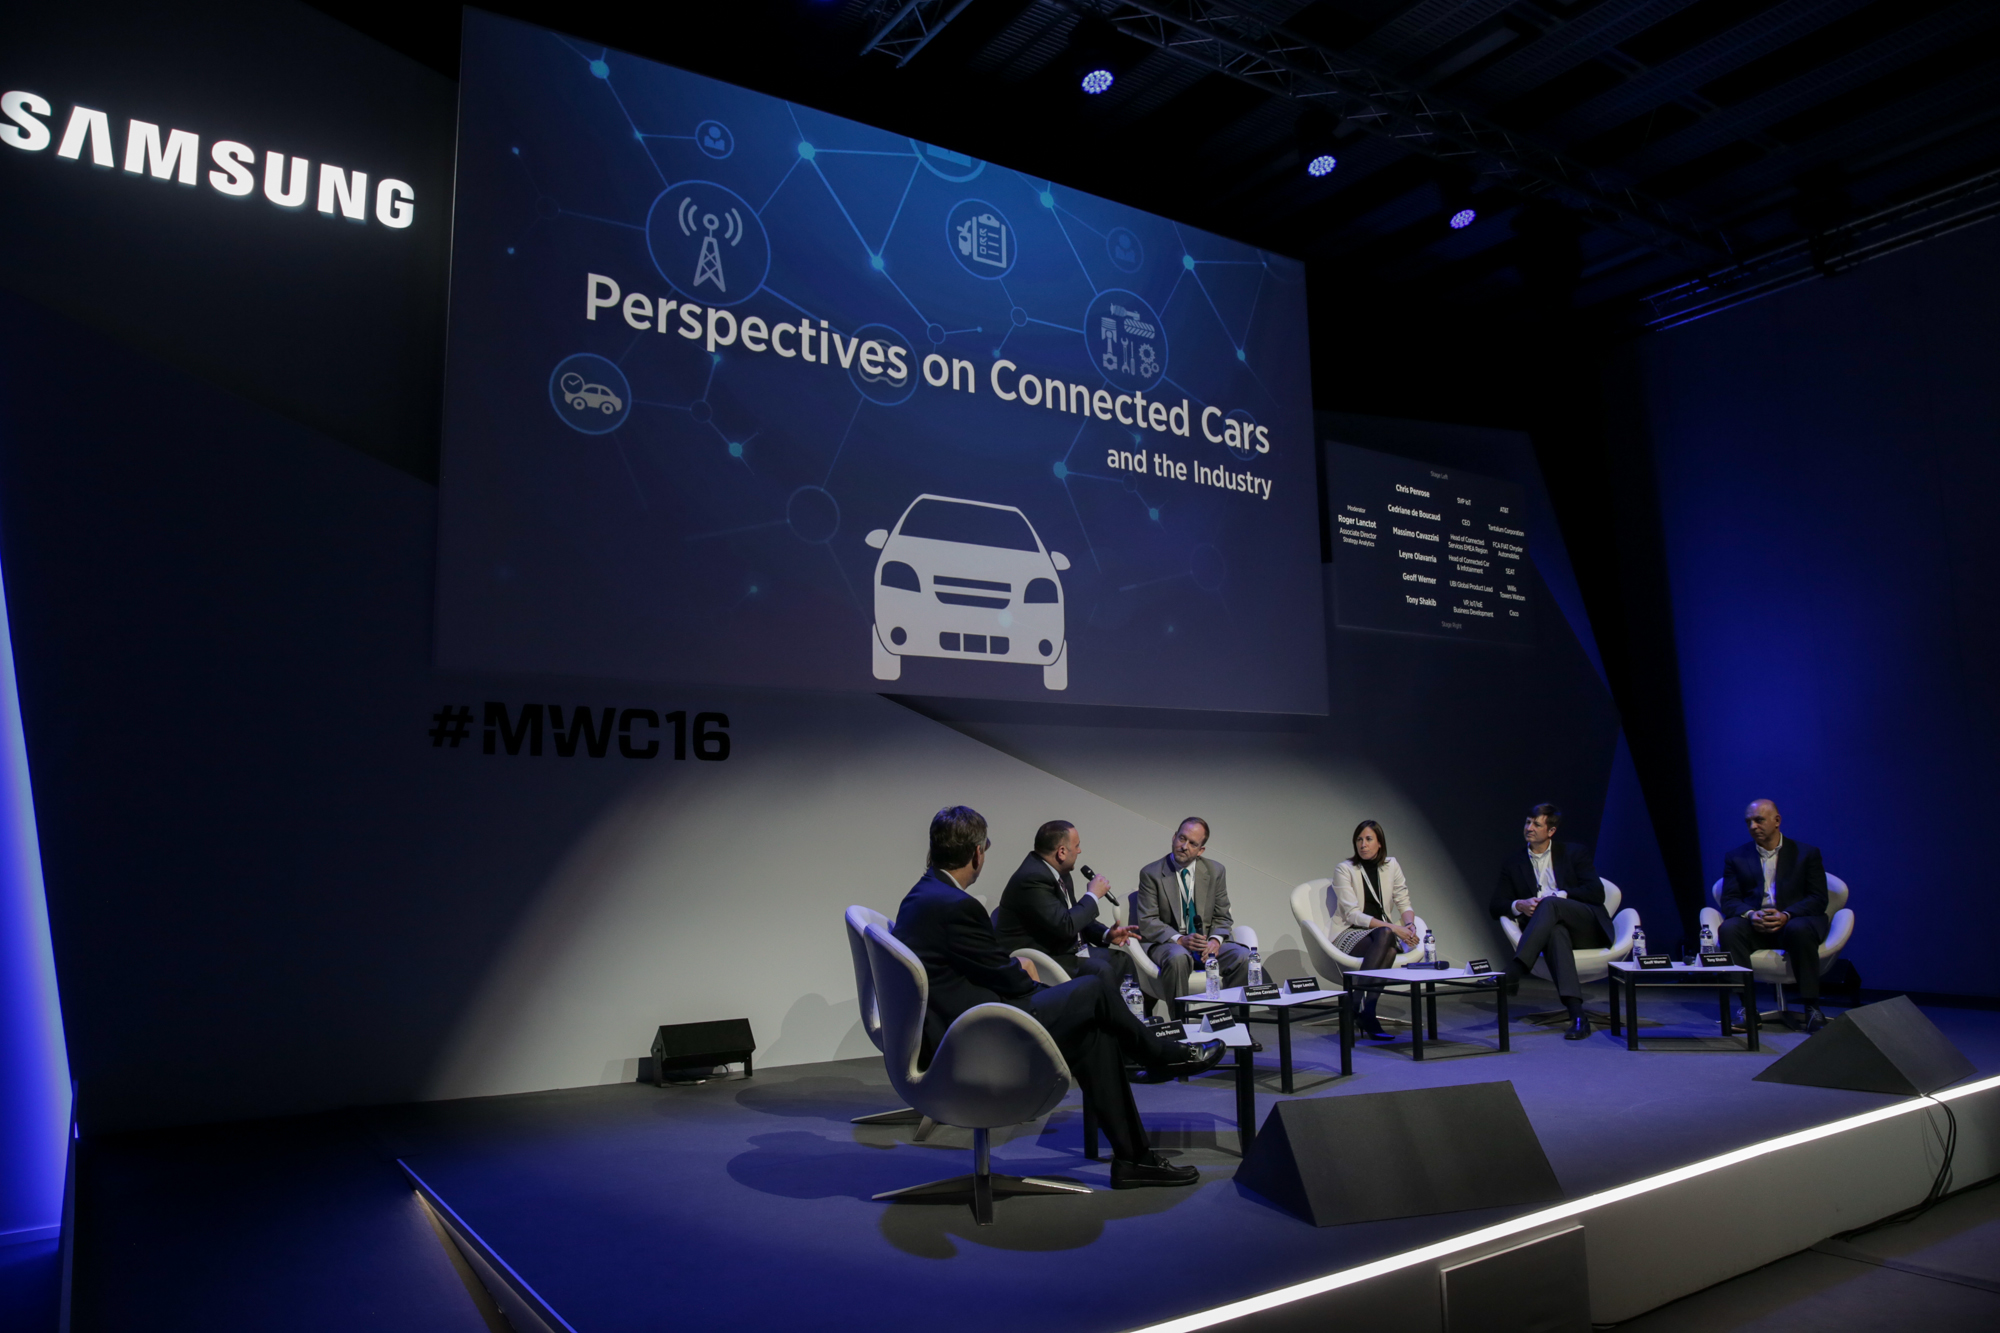 Samsung MWC16 - Keynote - Connected Cars